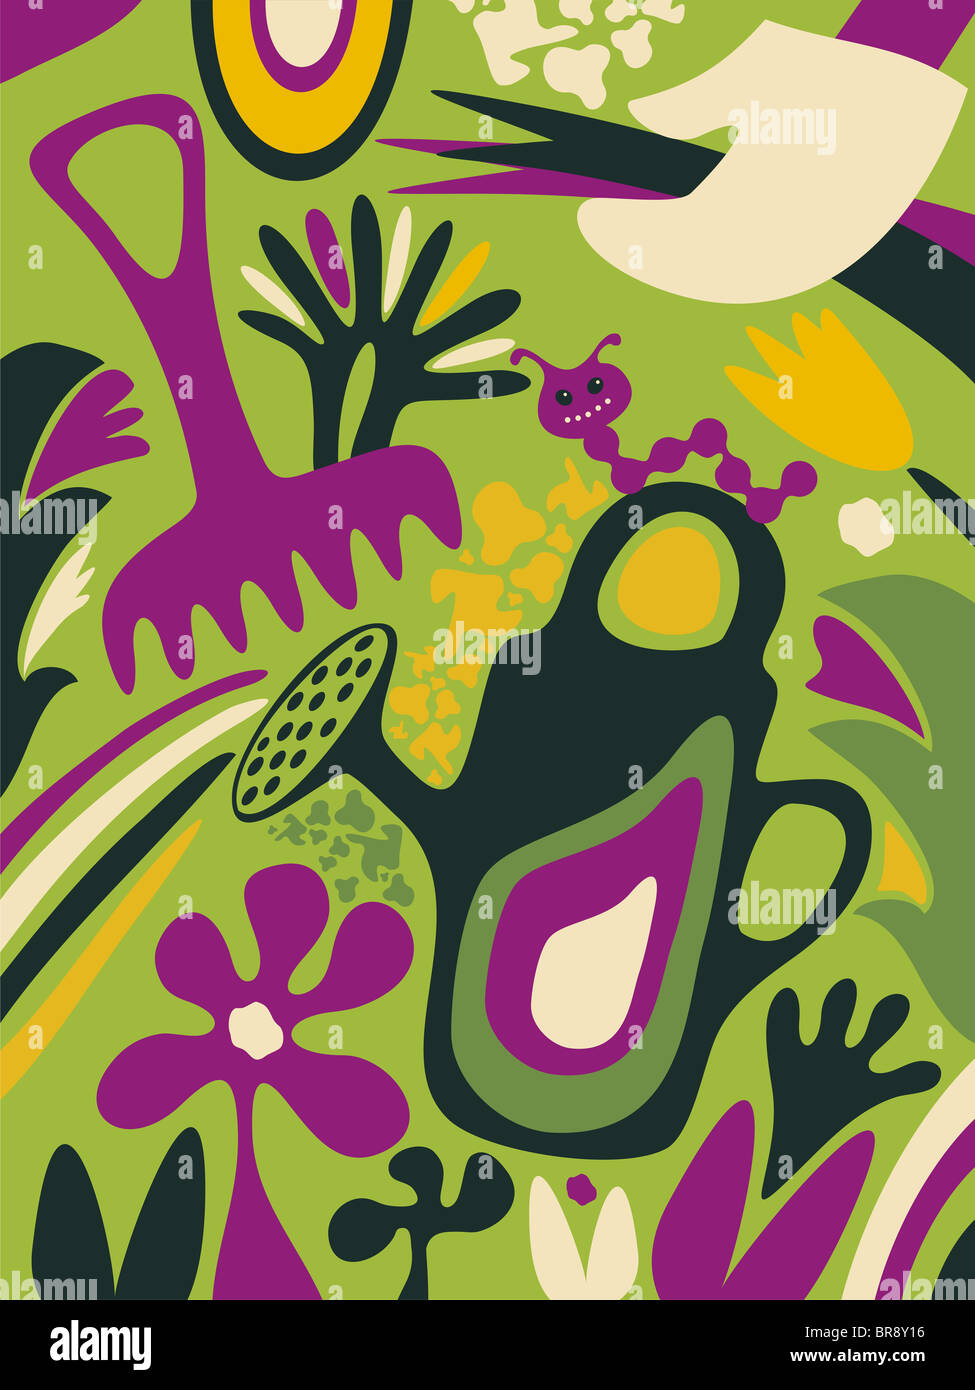 A whimsical illustration about gardening - Stock Image